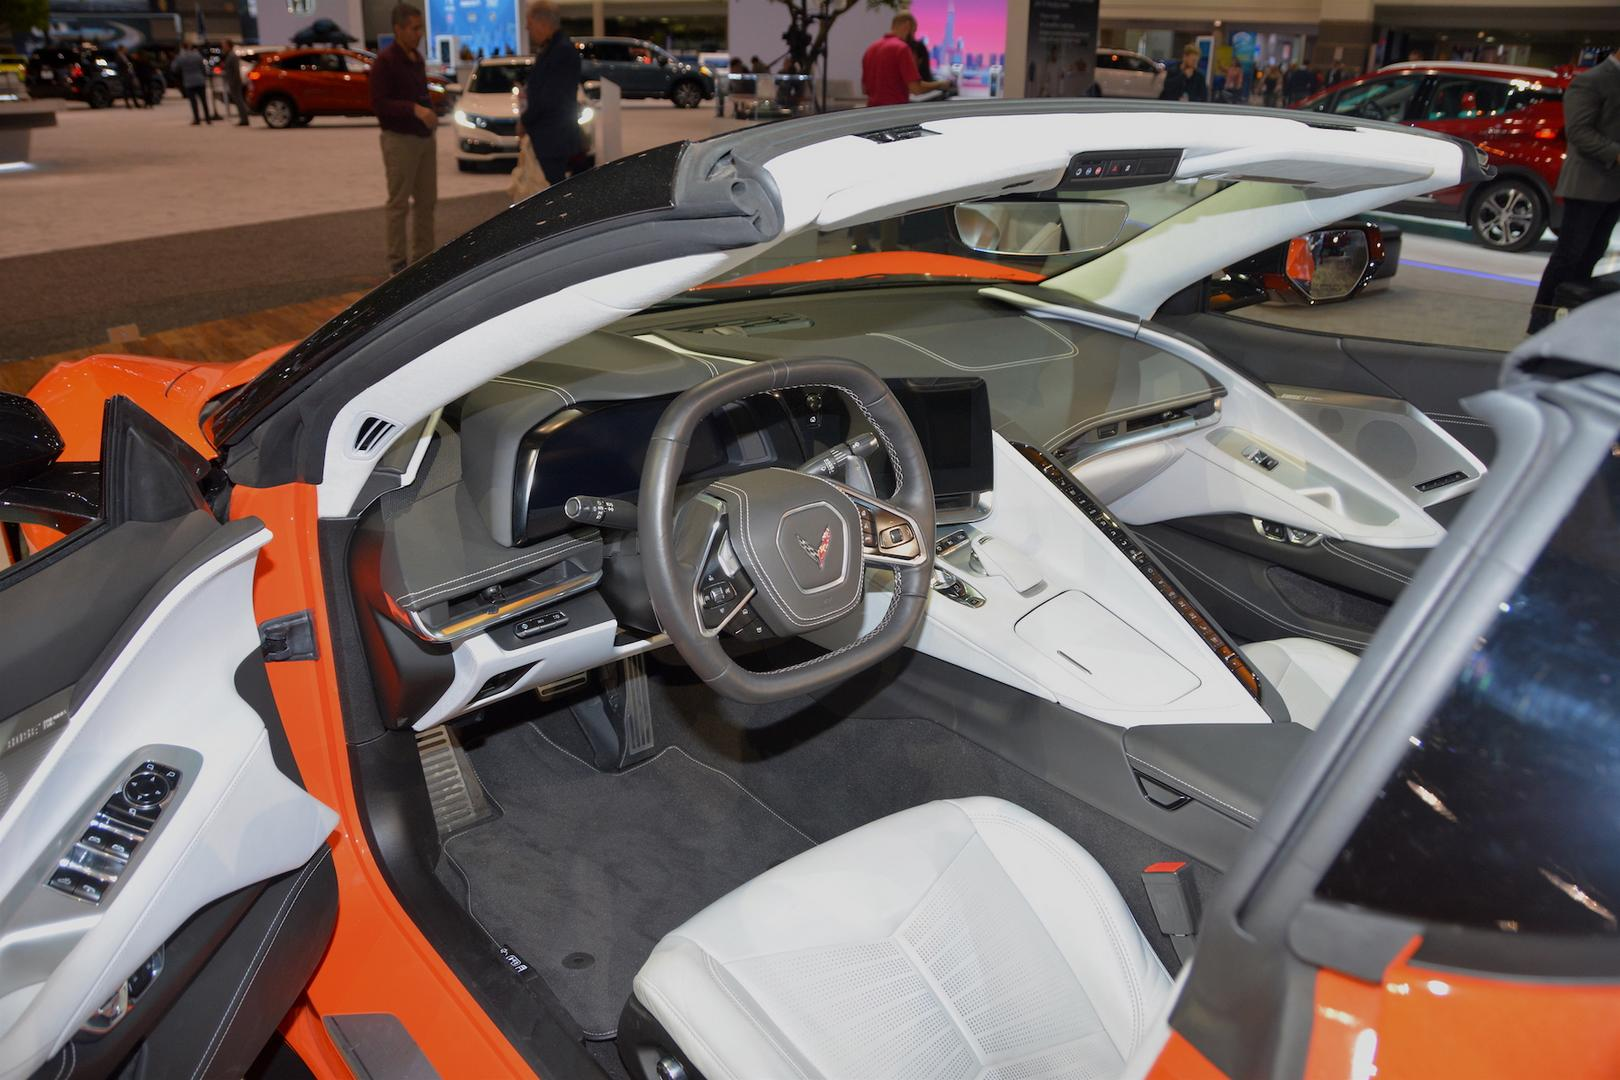 2020 Corvette C8 Convertible Interior White